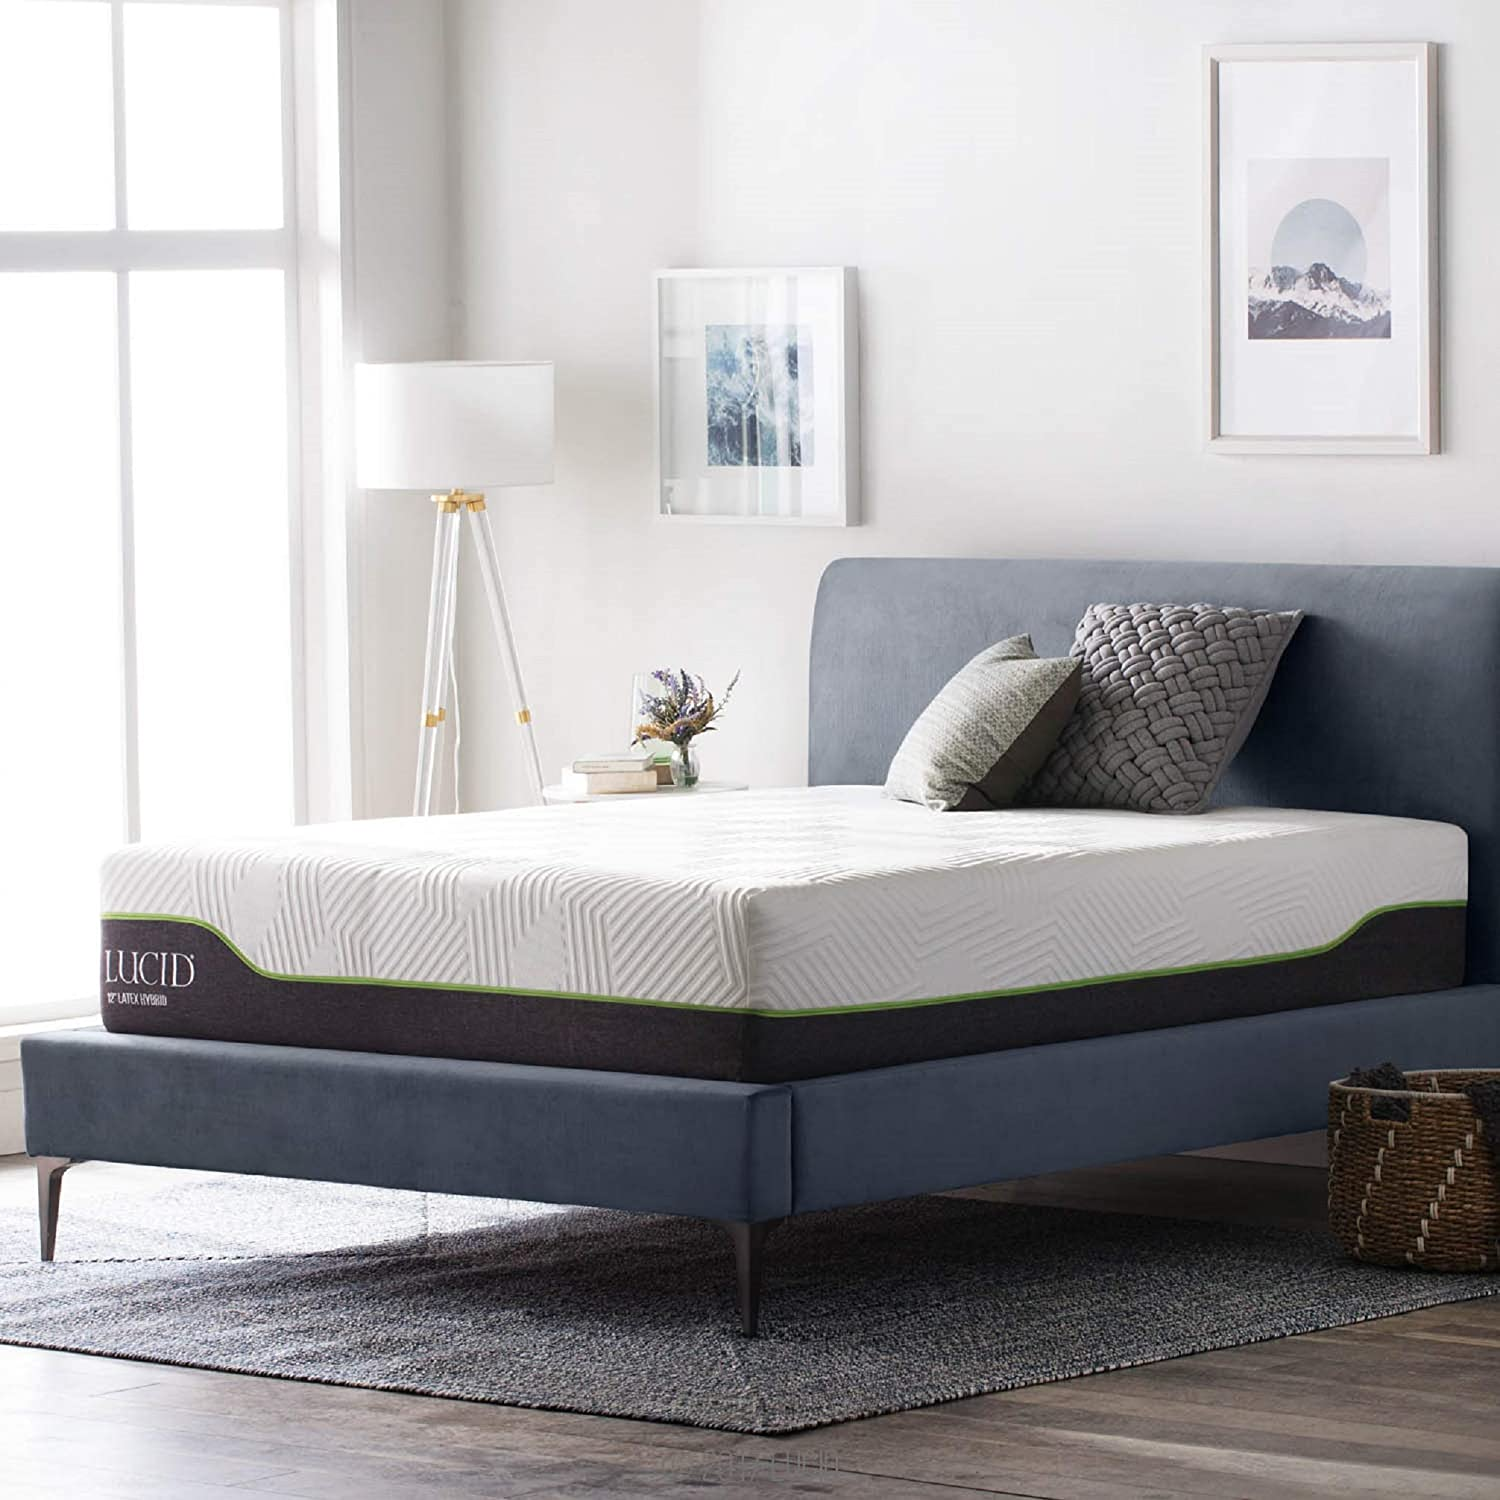 10 Best Matresses for Back Pain Relief. LUCID Latex-Hybrid Mattress Photo.